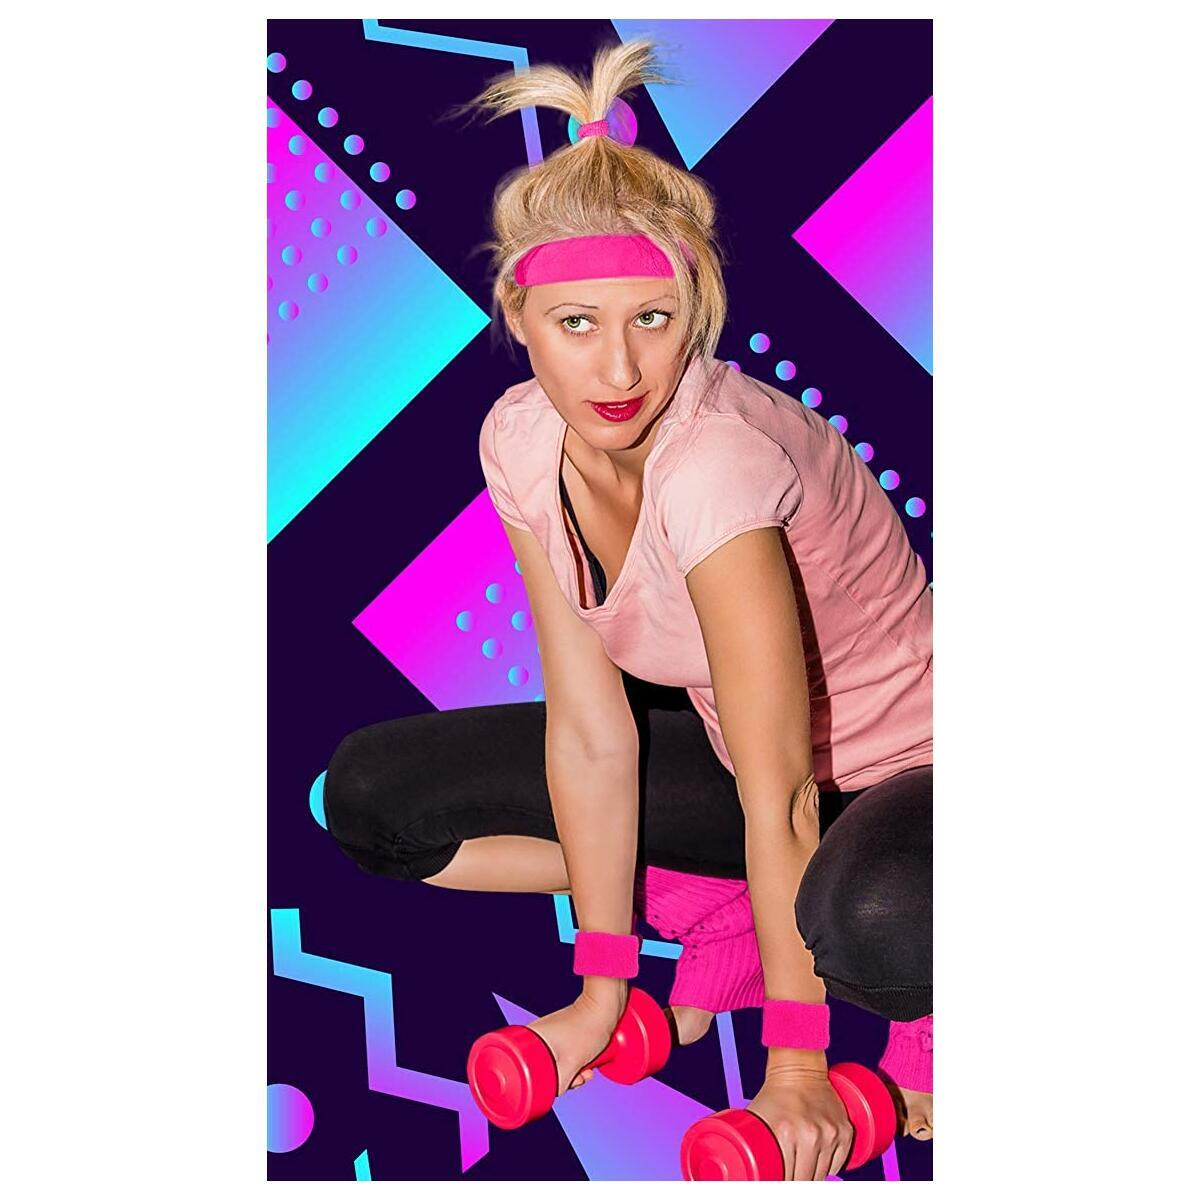 80s Workout Costumes for Women   80s Accessories for Women   80s Leg Warmers Set Neon Pink